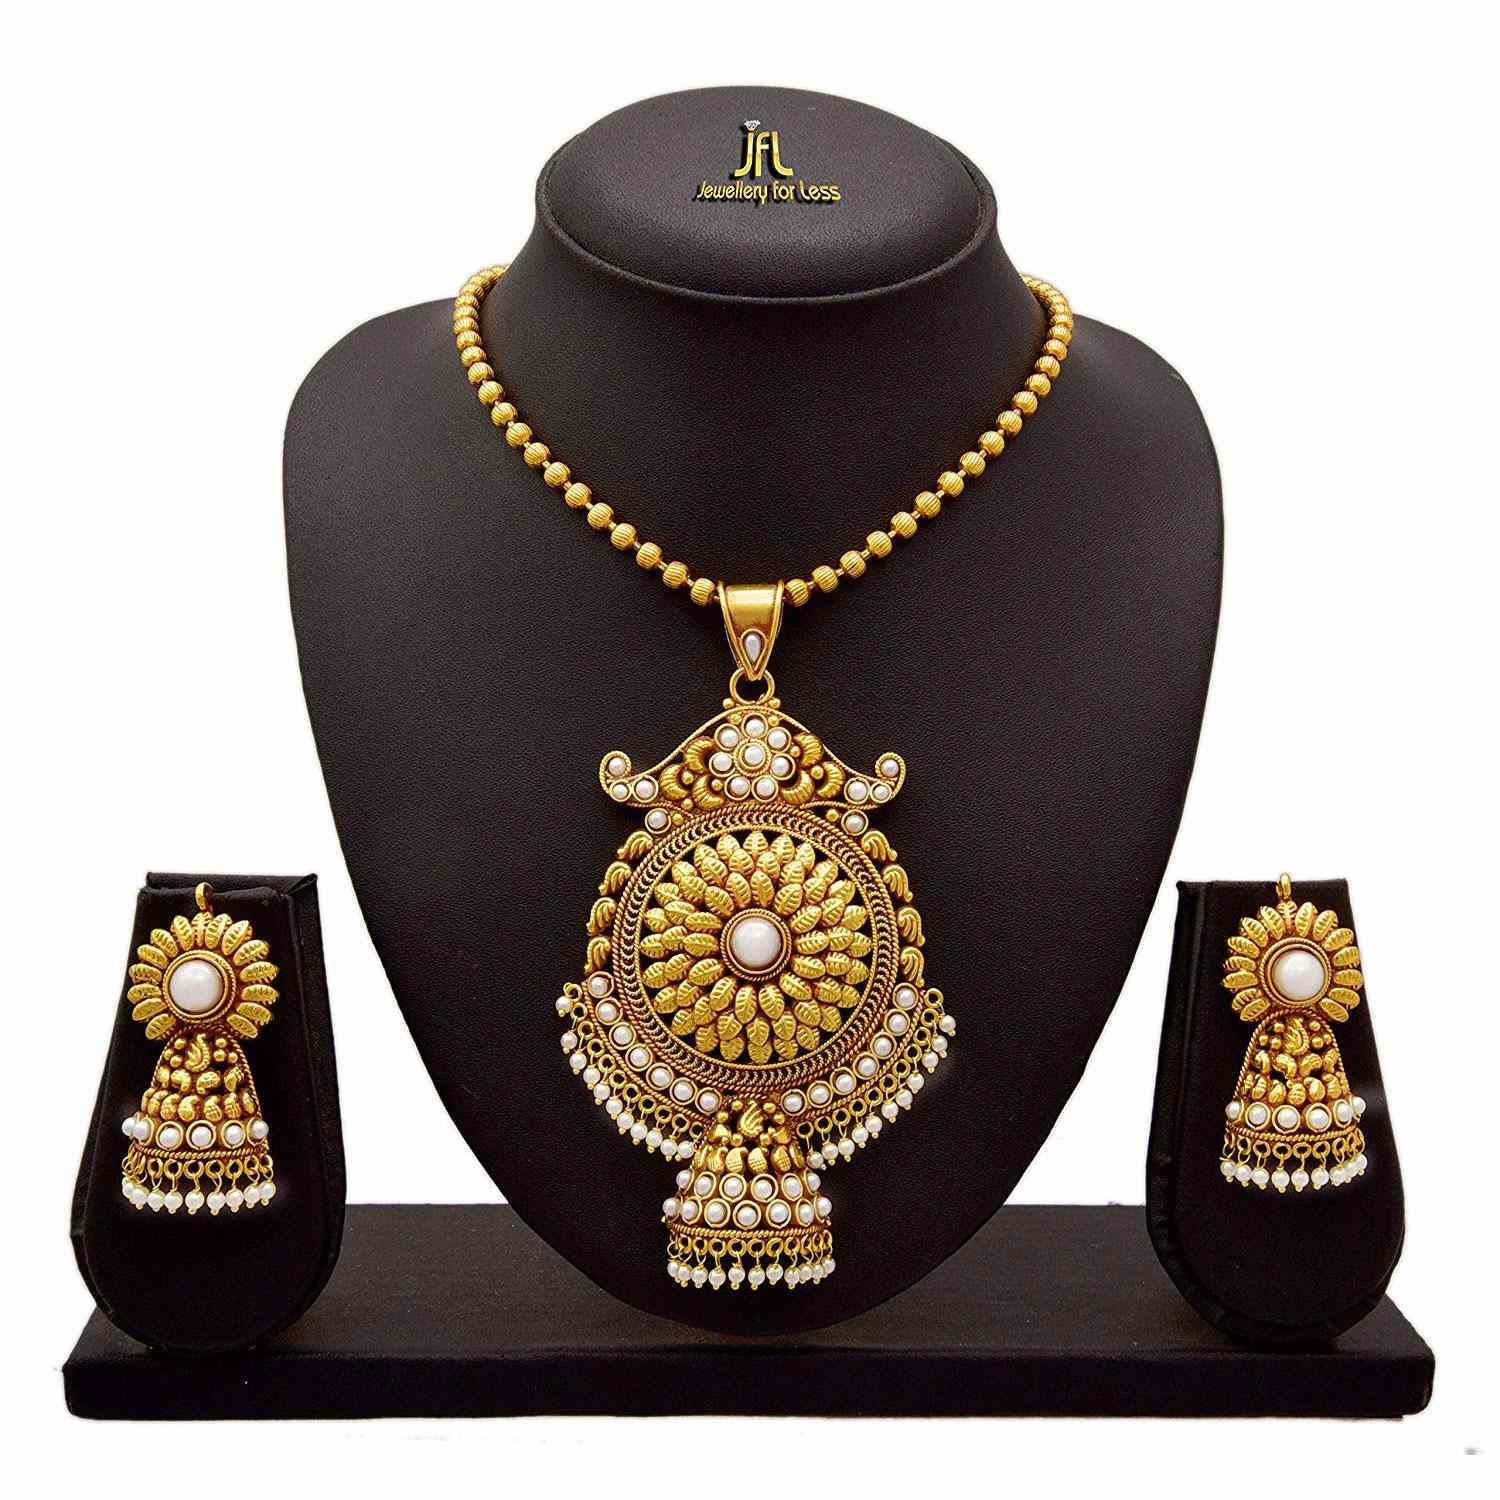 JFL - Traditional Ethnic One Gram Gold Plated Pearl Designer Pendant Set for Women and Girls